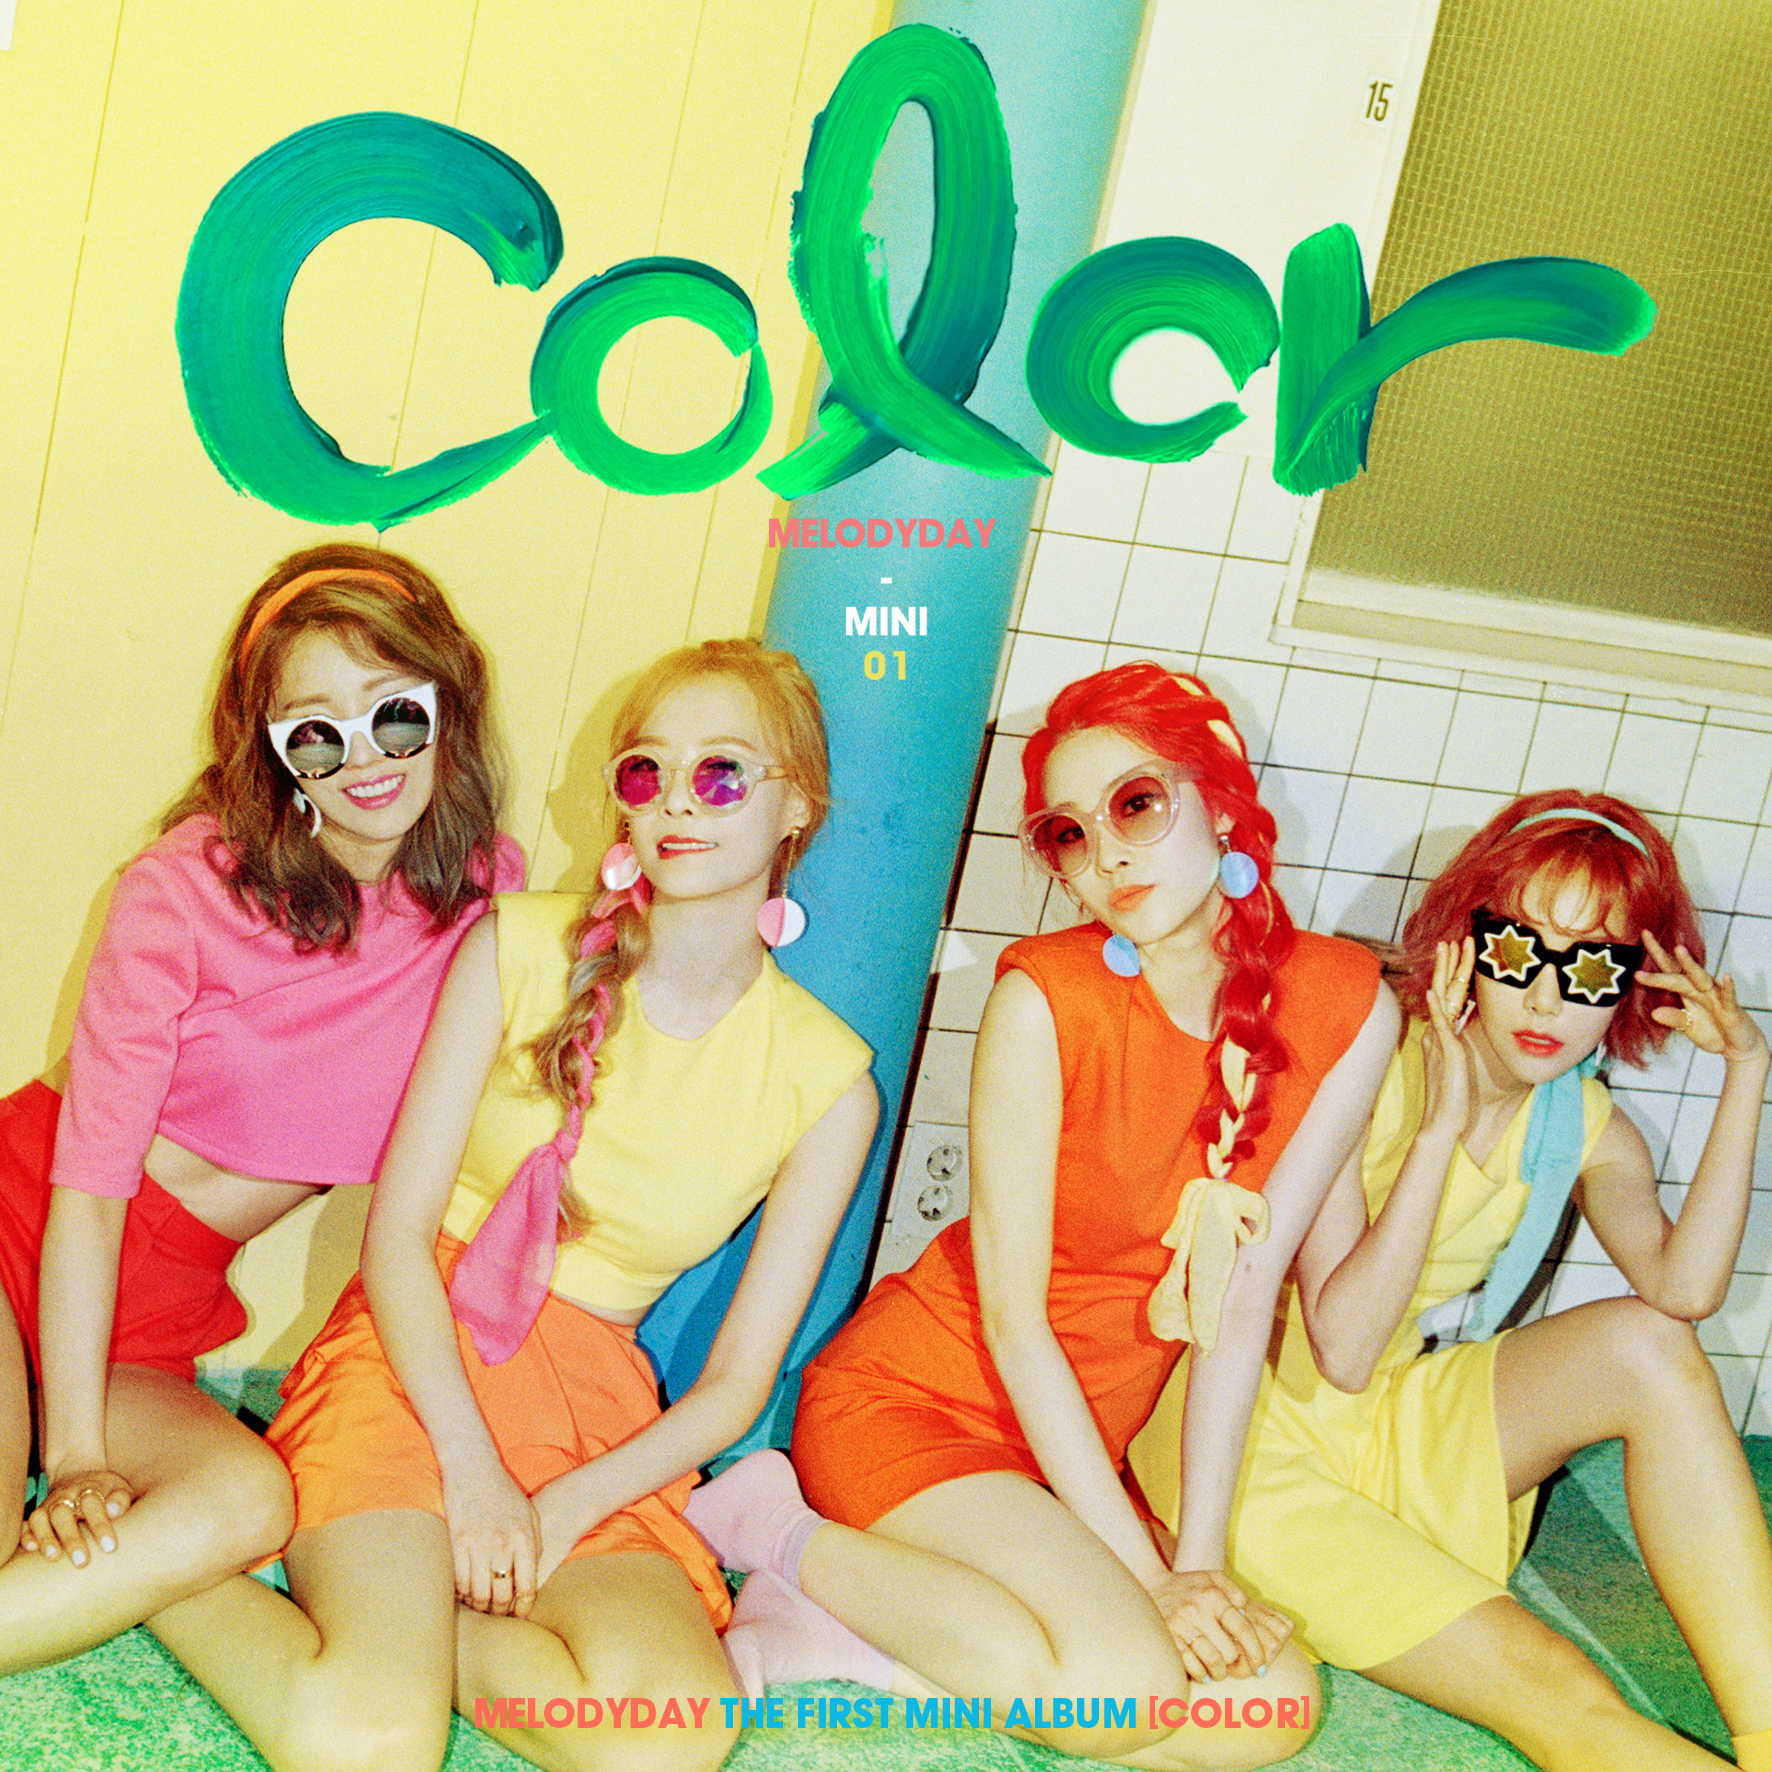 [멜로디데이] The 1st mini album 'COLOR'